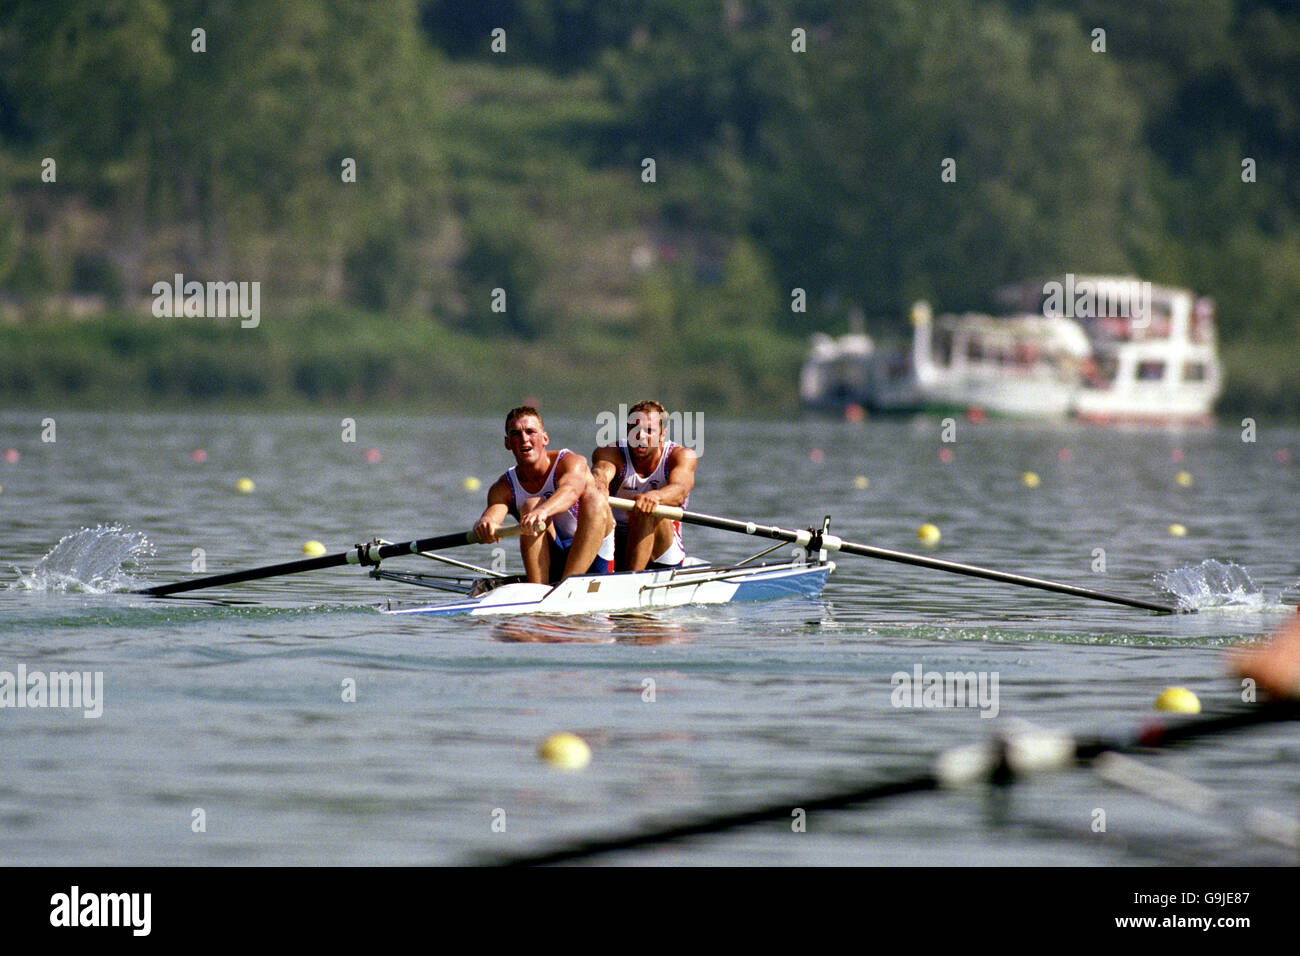 Rowing - Olympic Games Barcelona '92 - Coxless Pairs Stock Photo